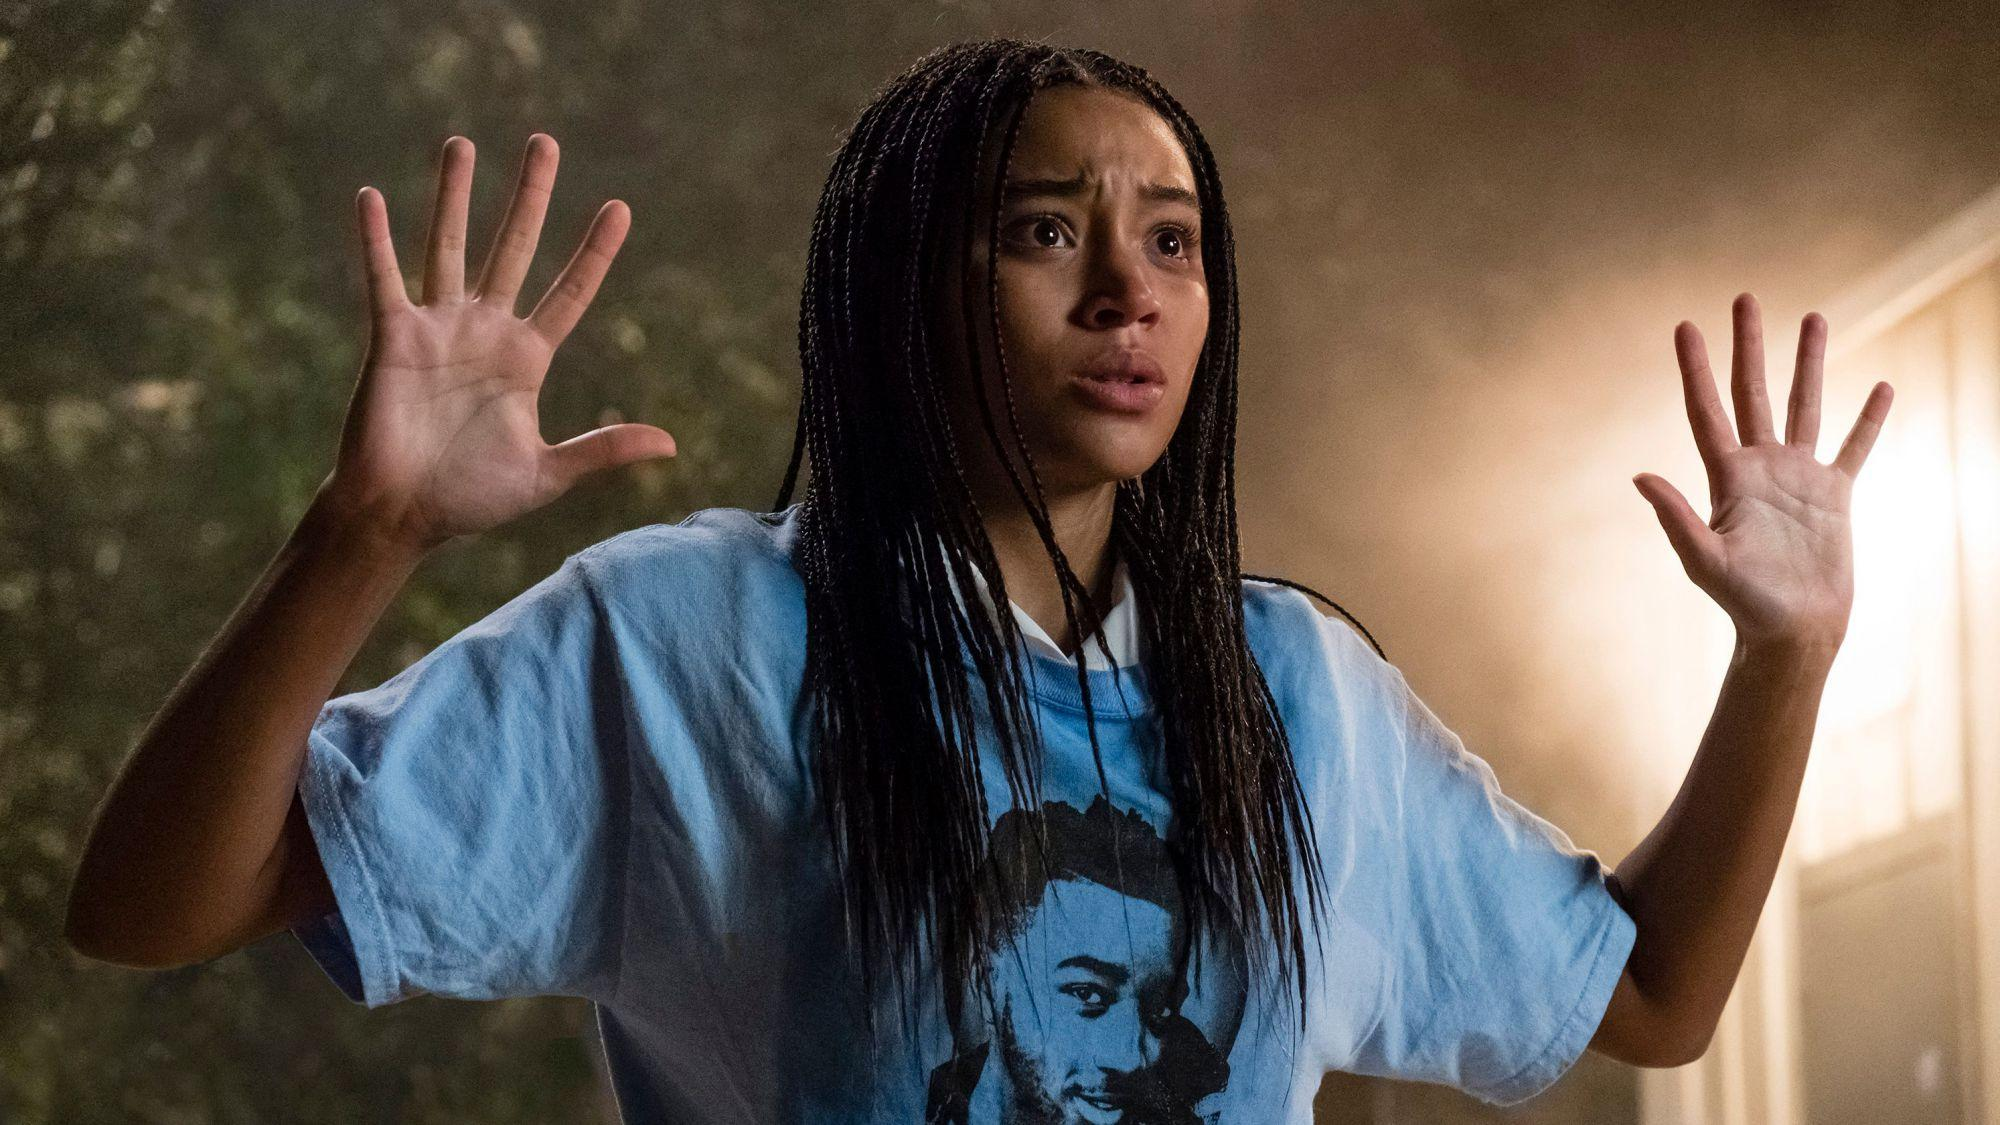 """The Hate U Give"" delivers heart-breaking, galvanizing #BlackLivesMatter story"